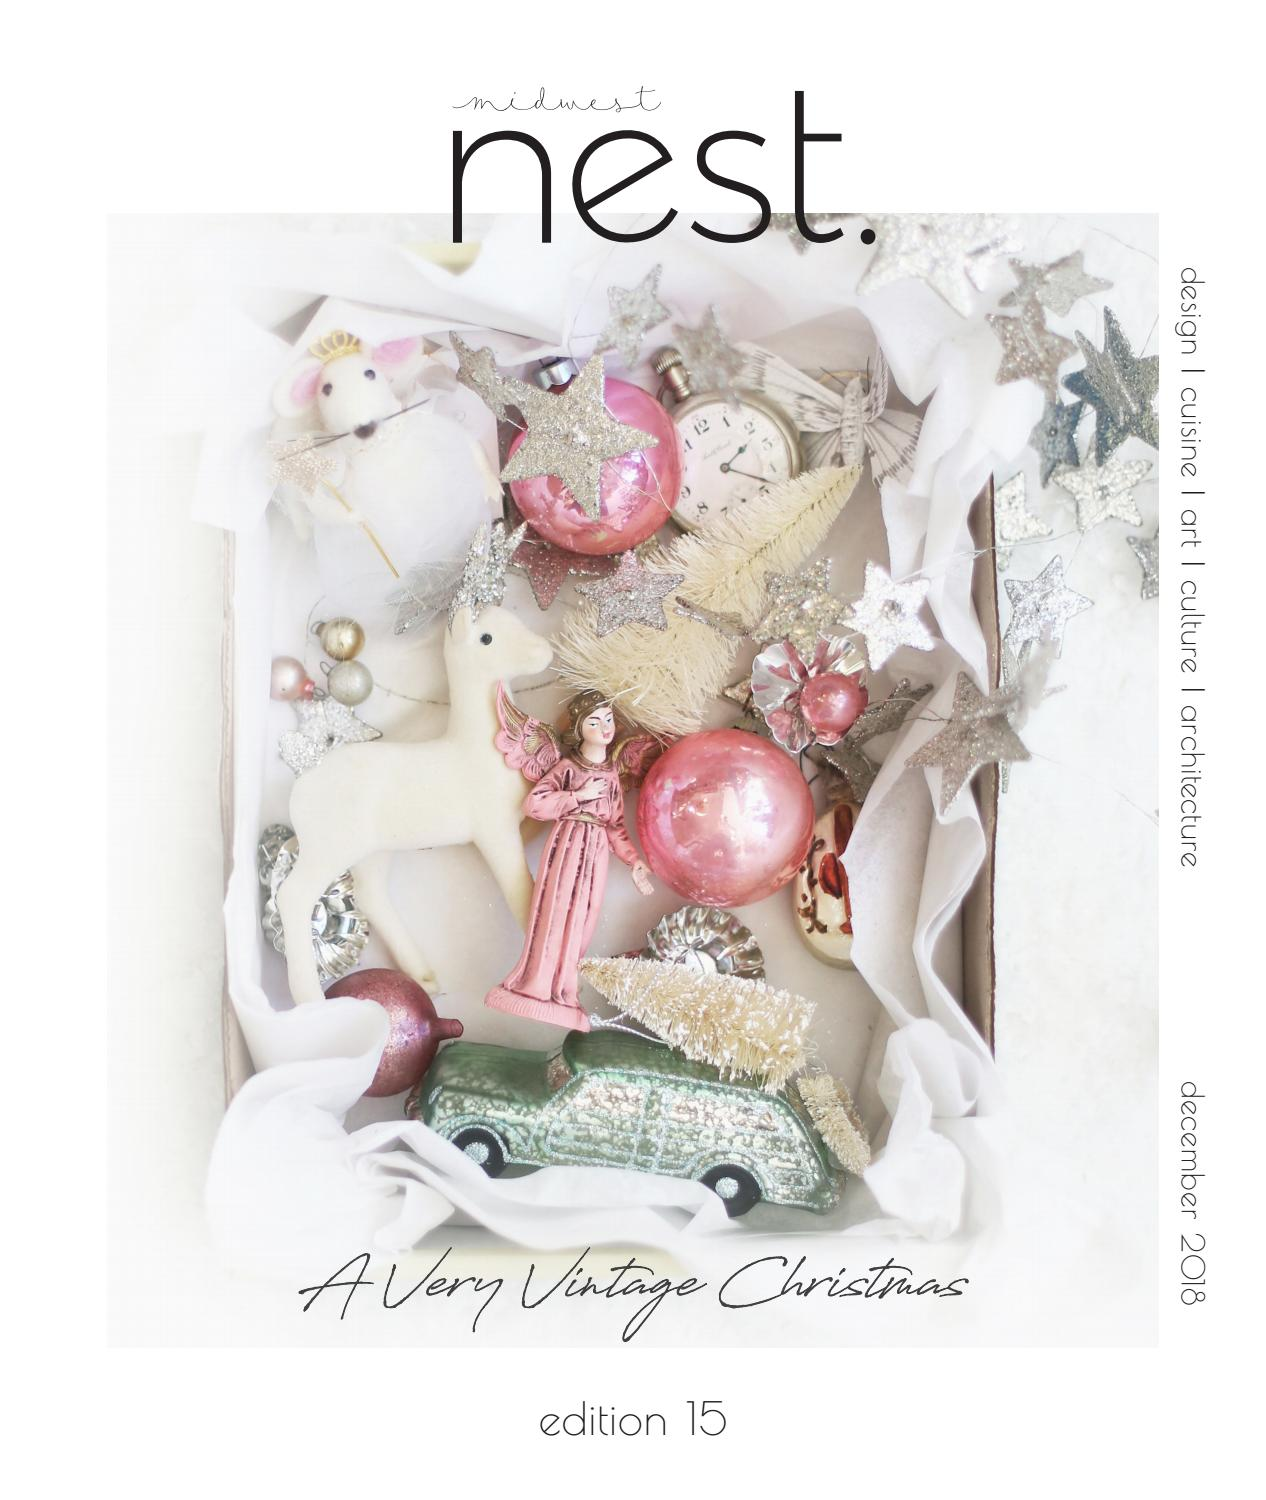 Midwest Nest - Edition 15 - December 2018 by Midwest Nest Magazine ...